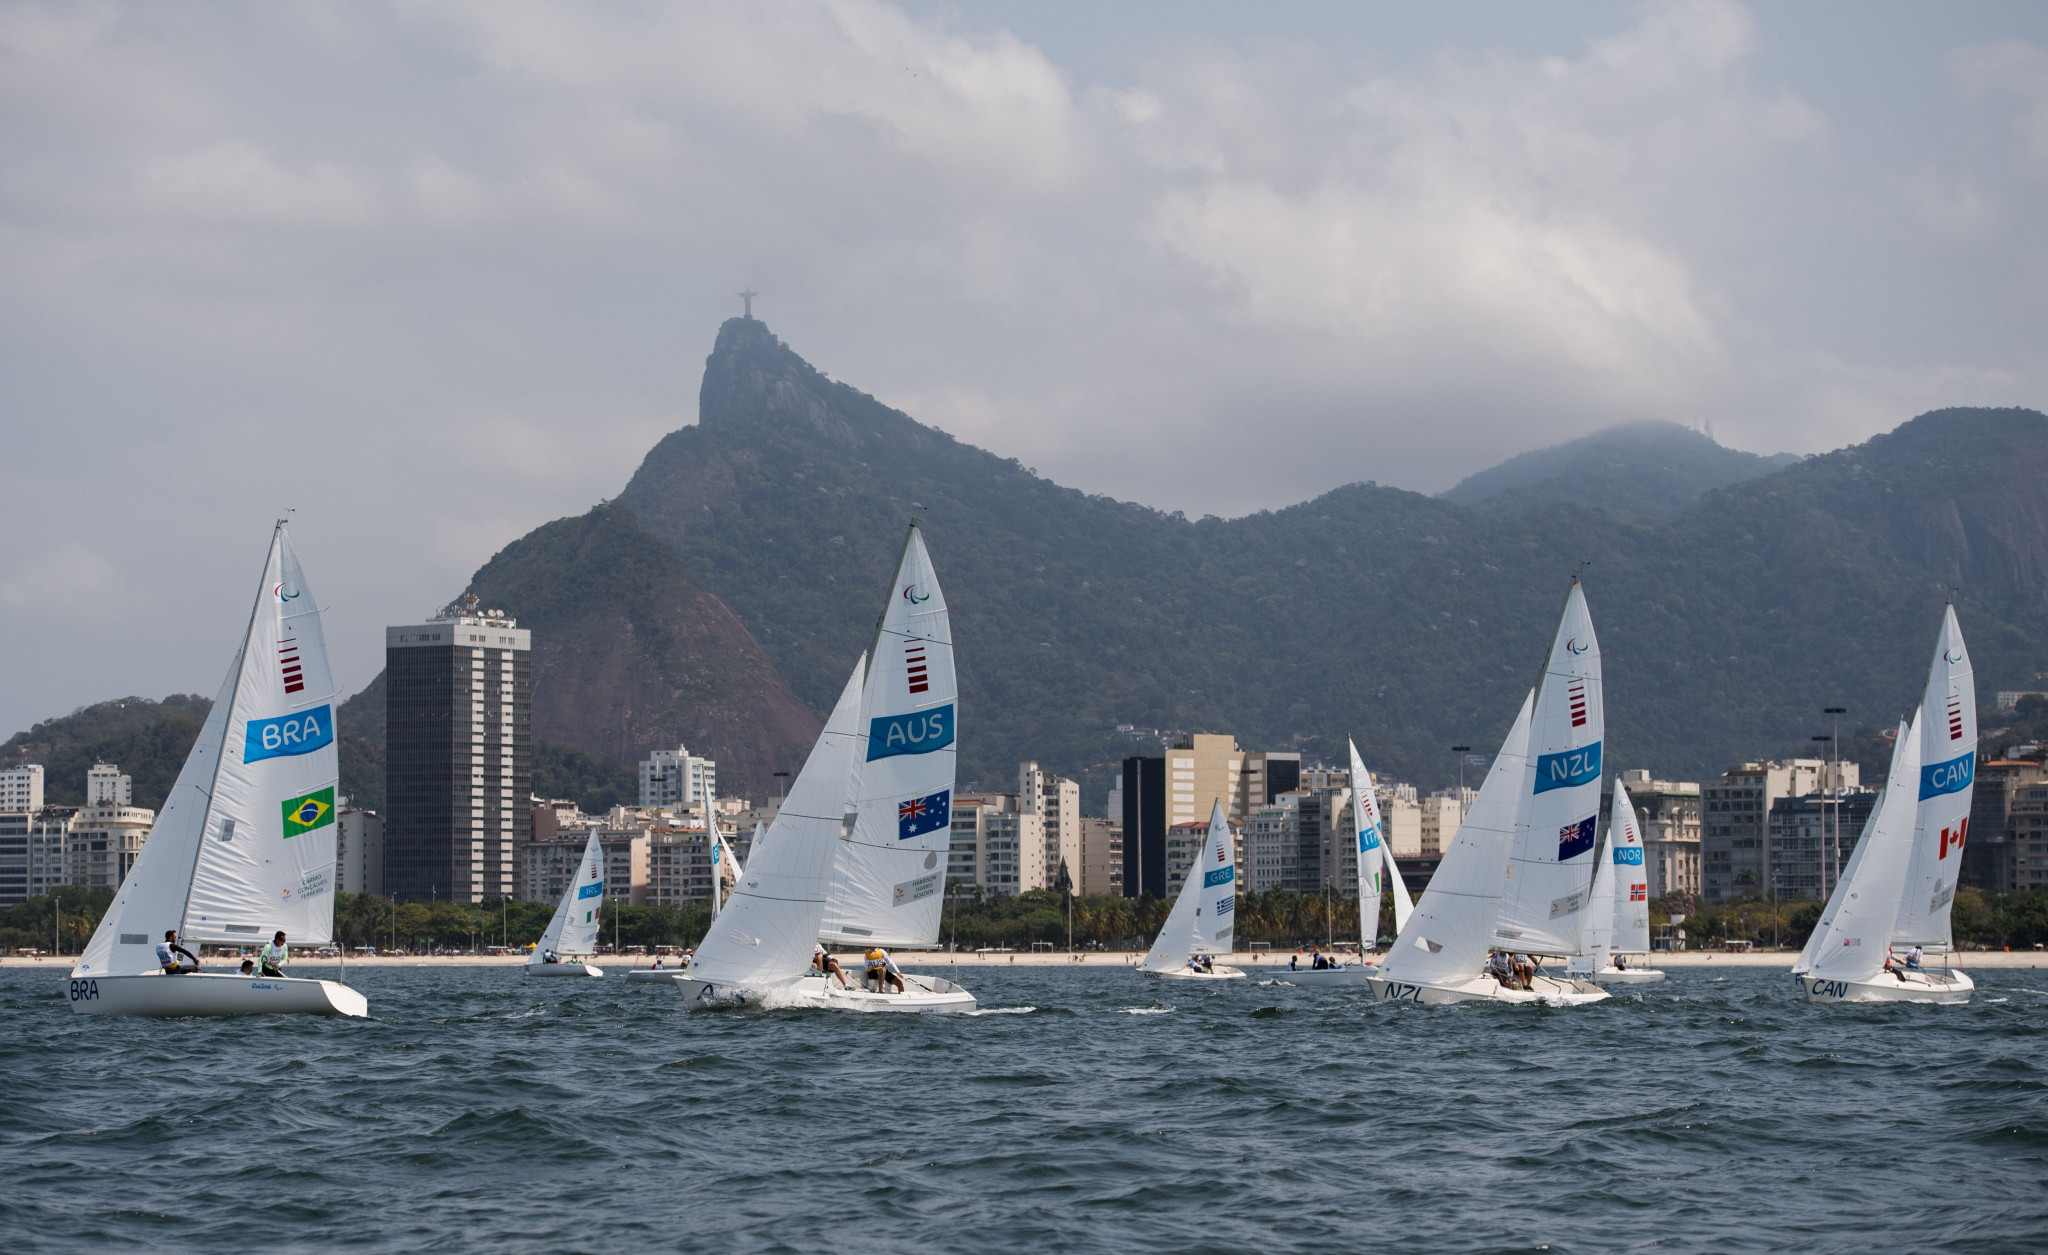 Sailing will hope to be in consideration after being dropped for Tokyo 2020 ©Getty Images